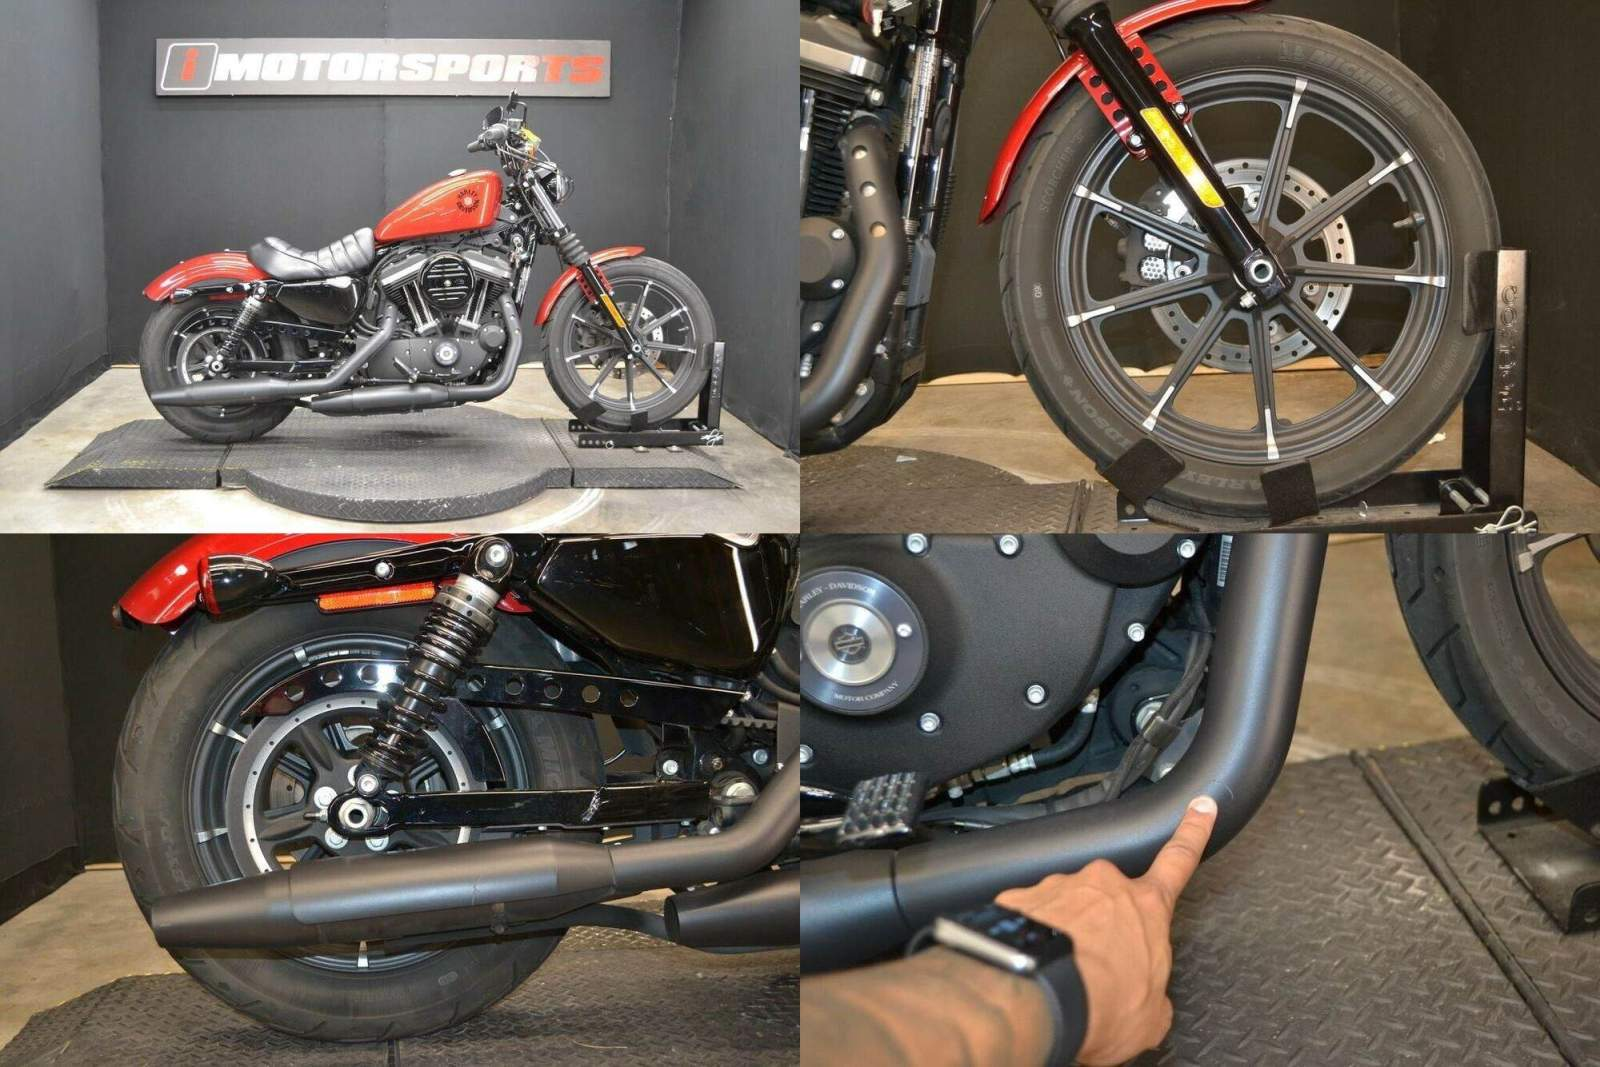 2019 Harley-Davidson XL 883N - Sportster Iron 883 Red used for sale craigslist